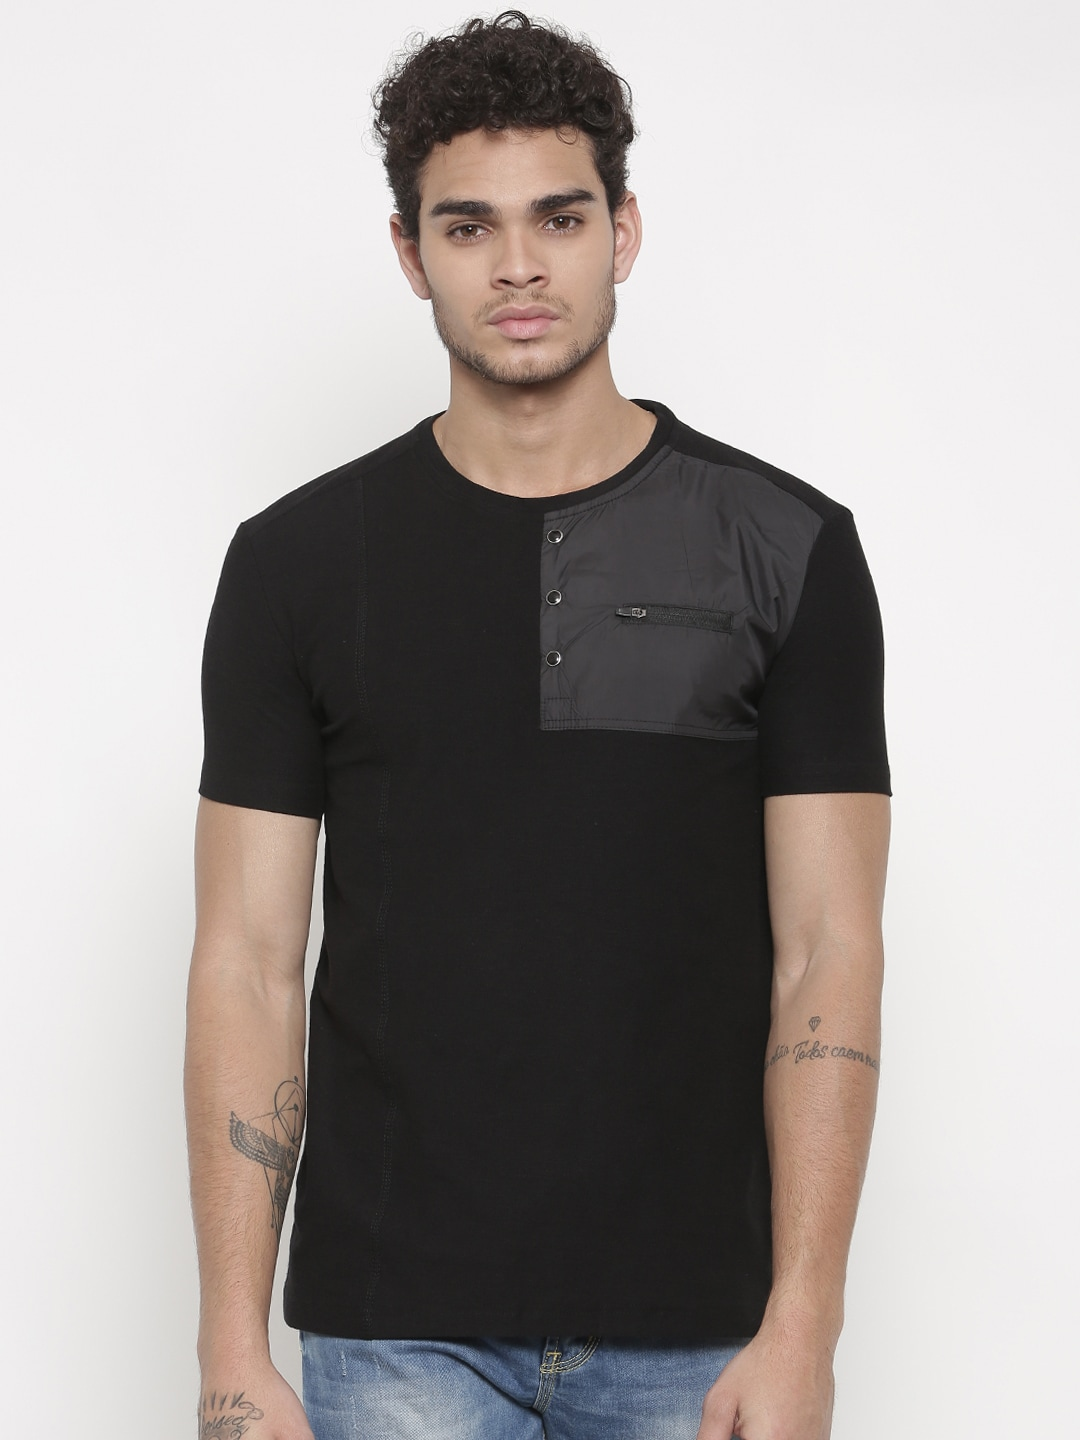 0bedd1b69373 Status Quo Men Solid Black Polo Tshirts - Buy Status Quo Men Solid Black  Polo Tshirts online in India